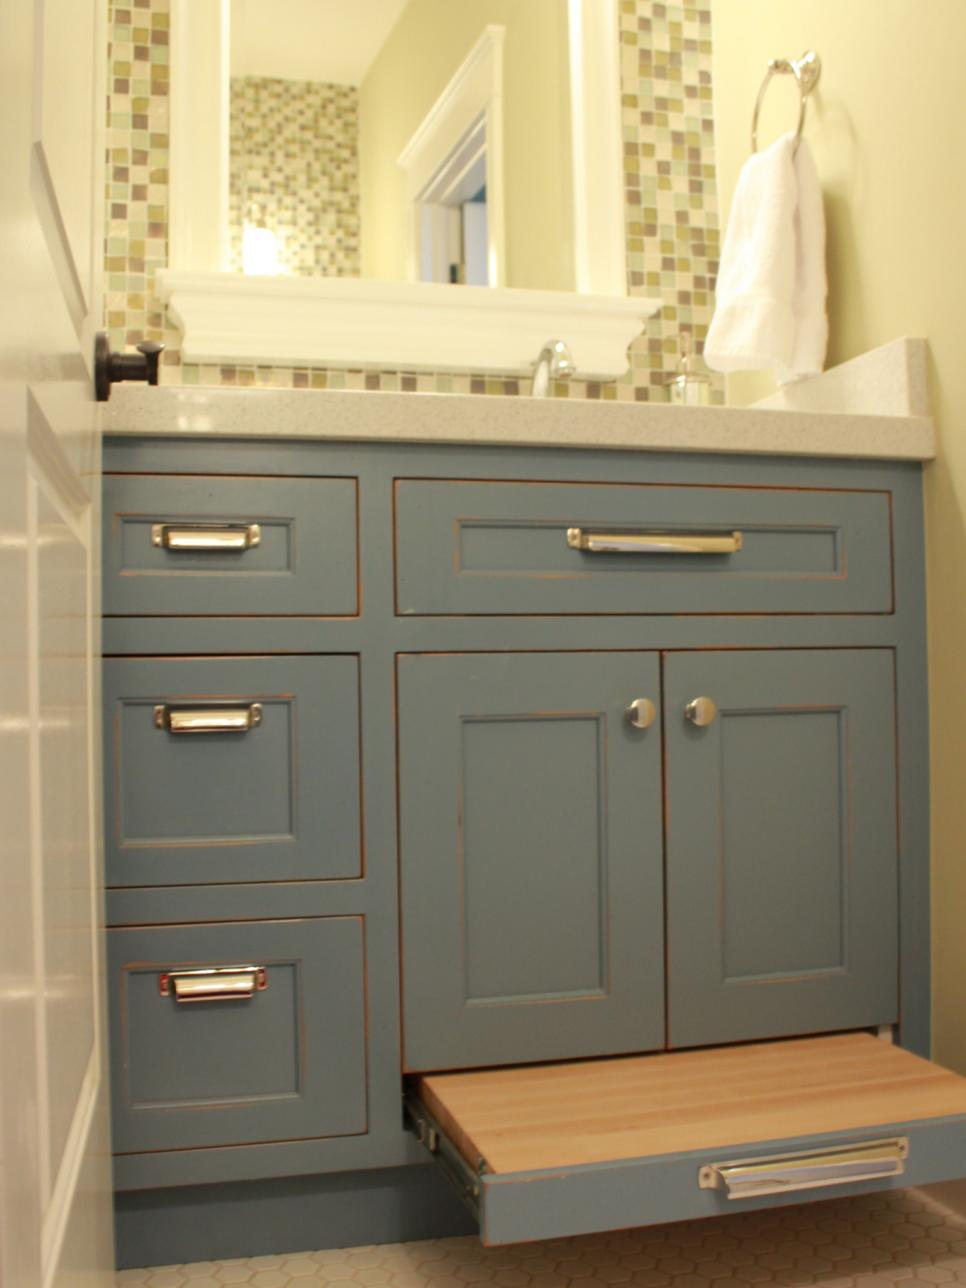 savvy bathroom vanity storage ideas  hgtv, Bathroom decor